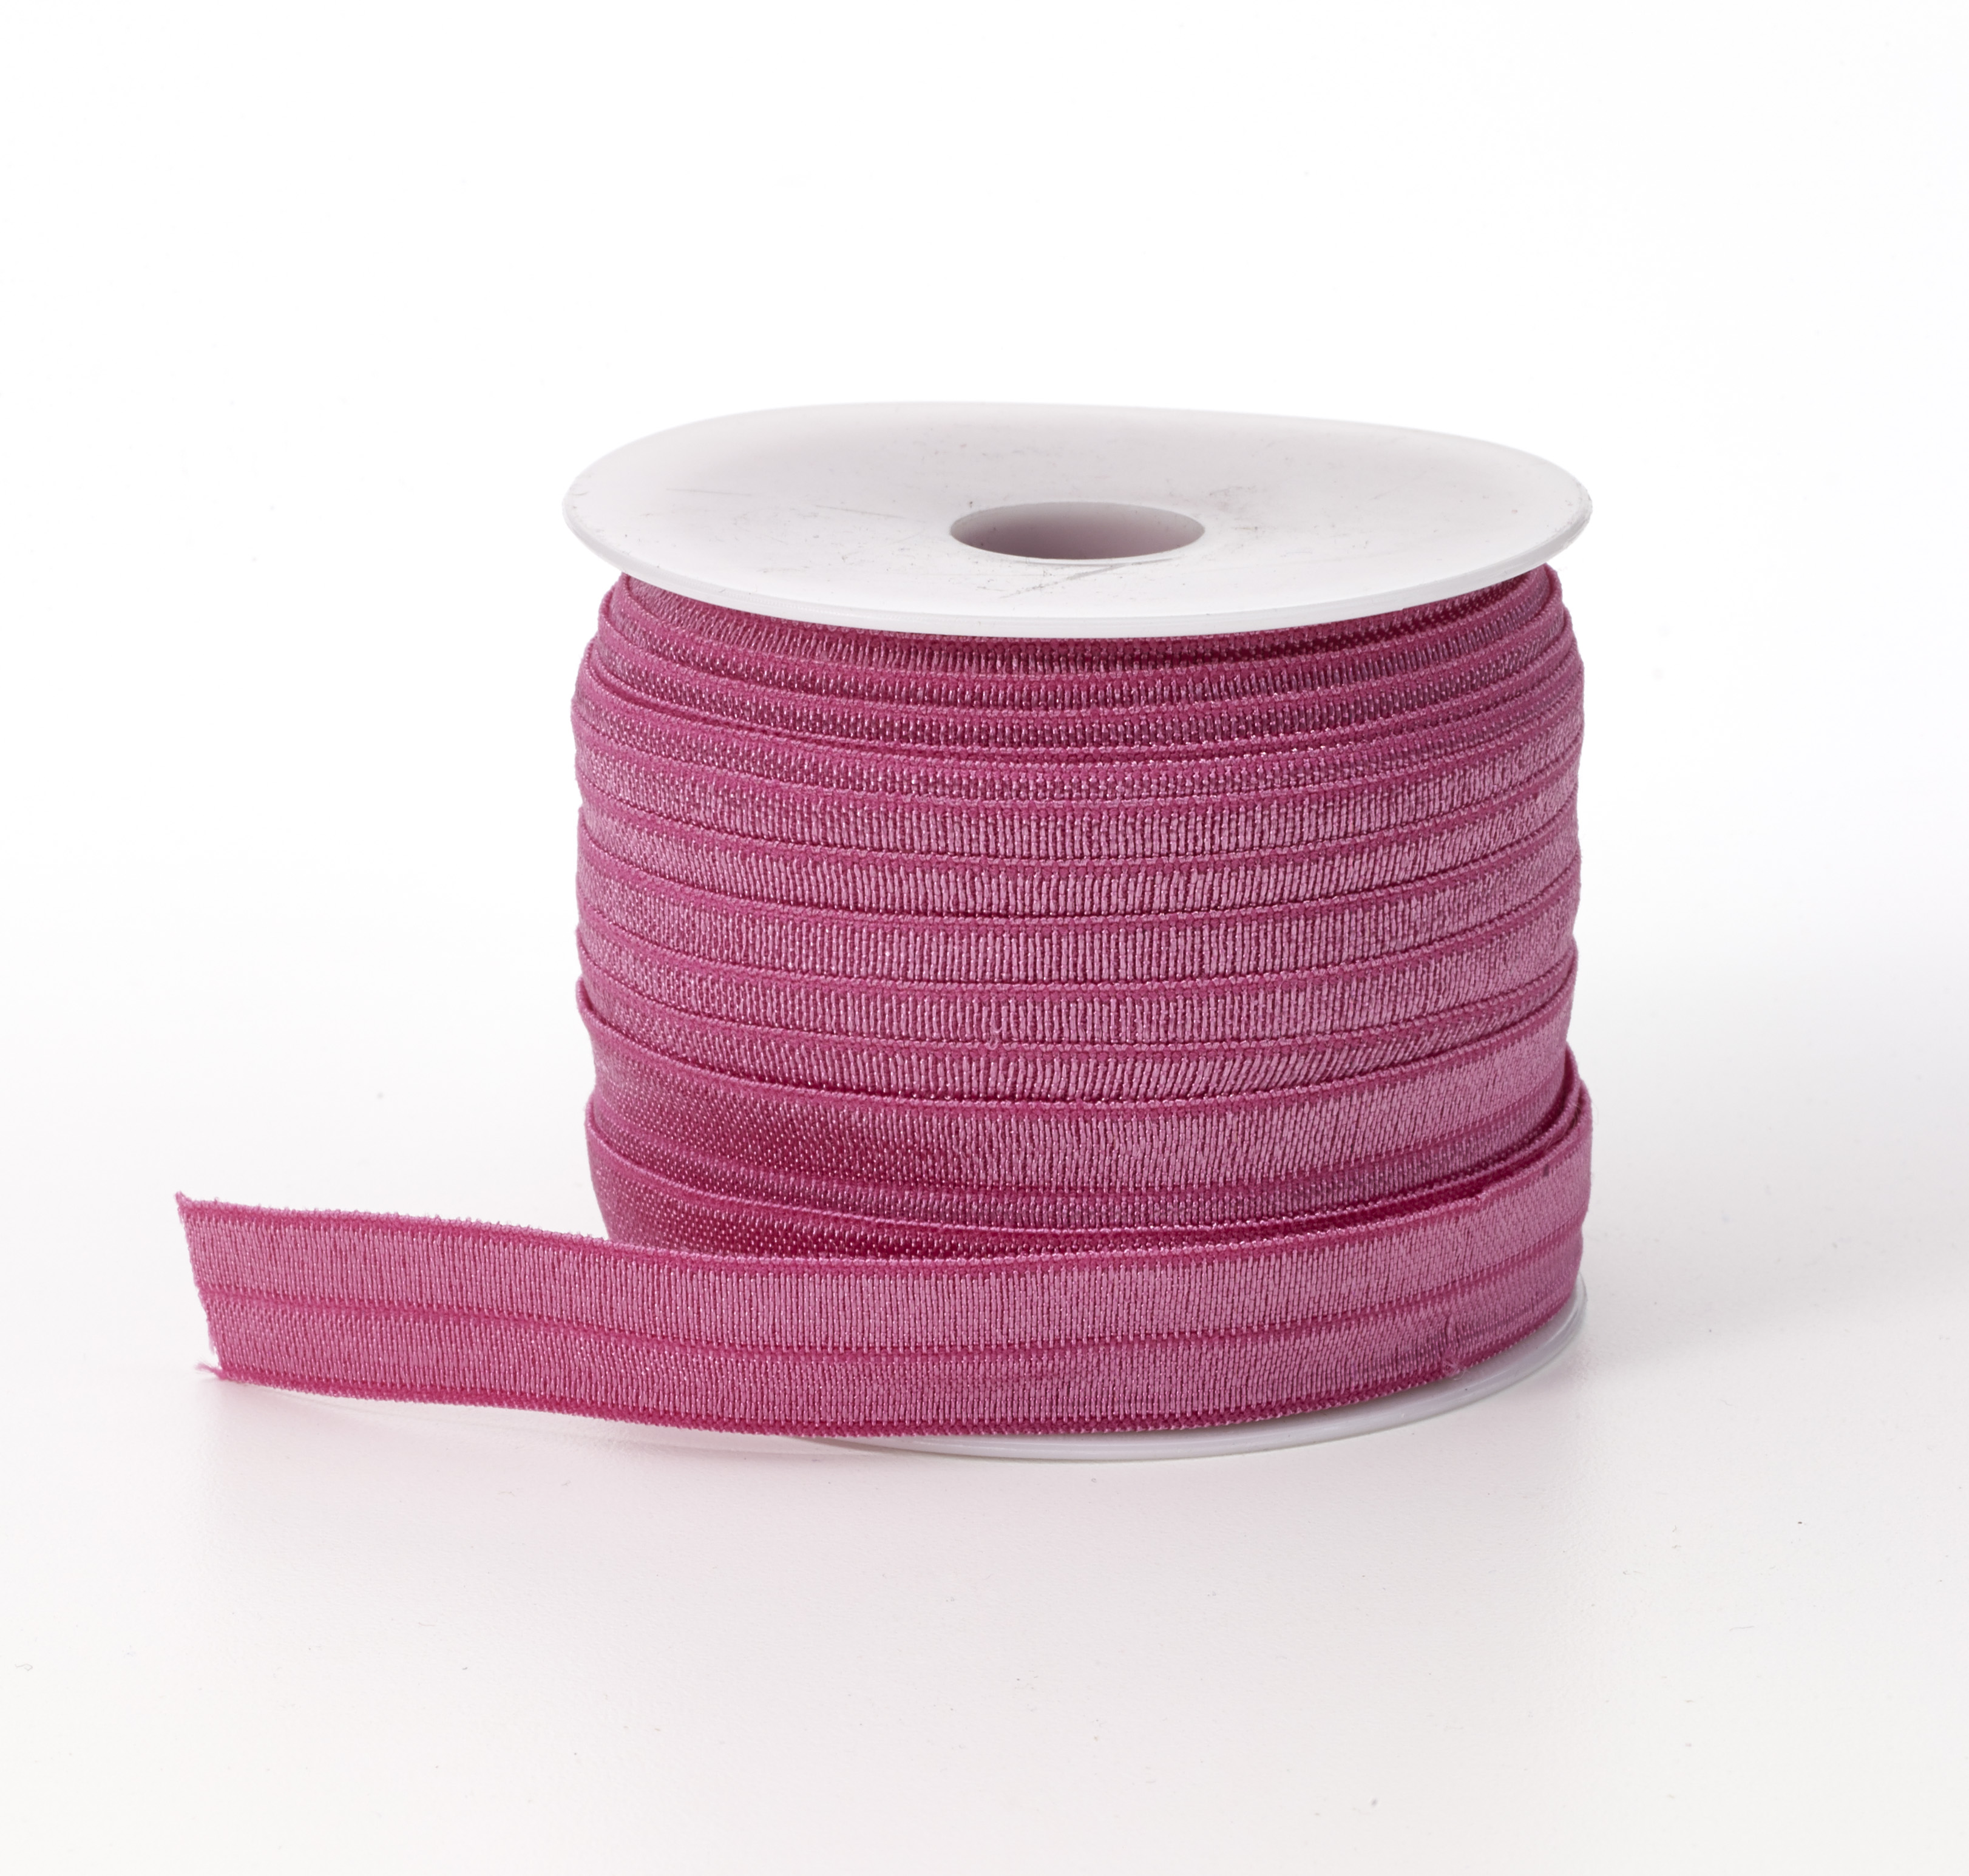 M3070-042, Foldover elastic, .625 in Wide, 25yds, Rose, Mutual Industries